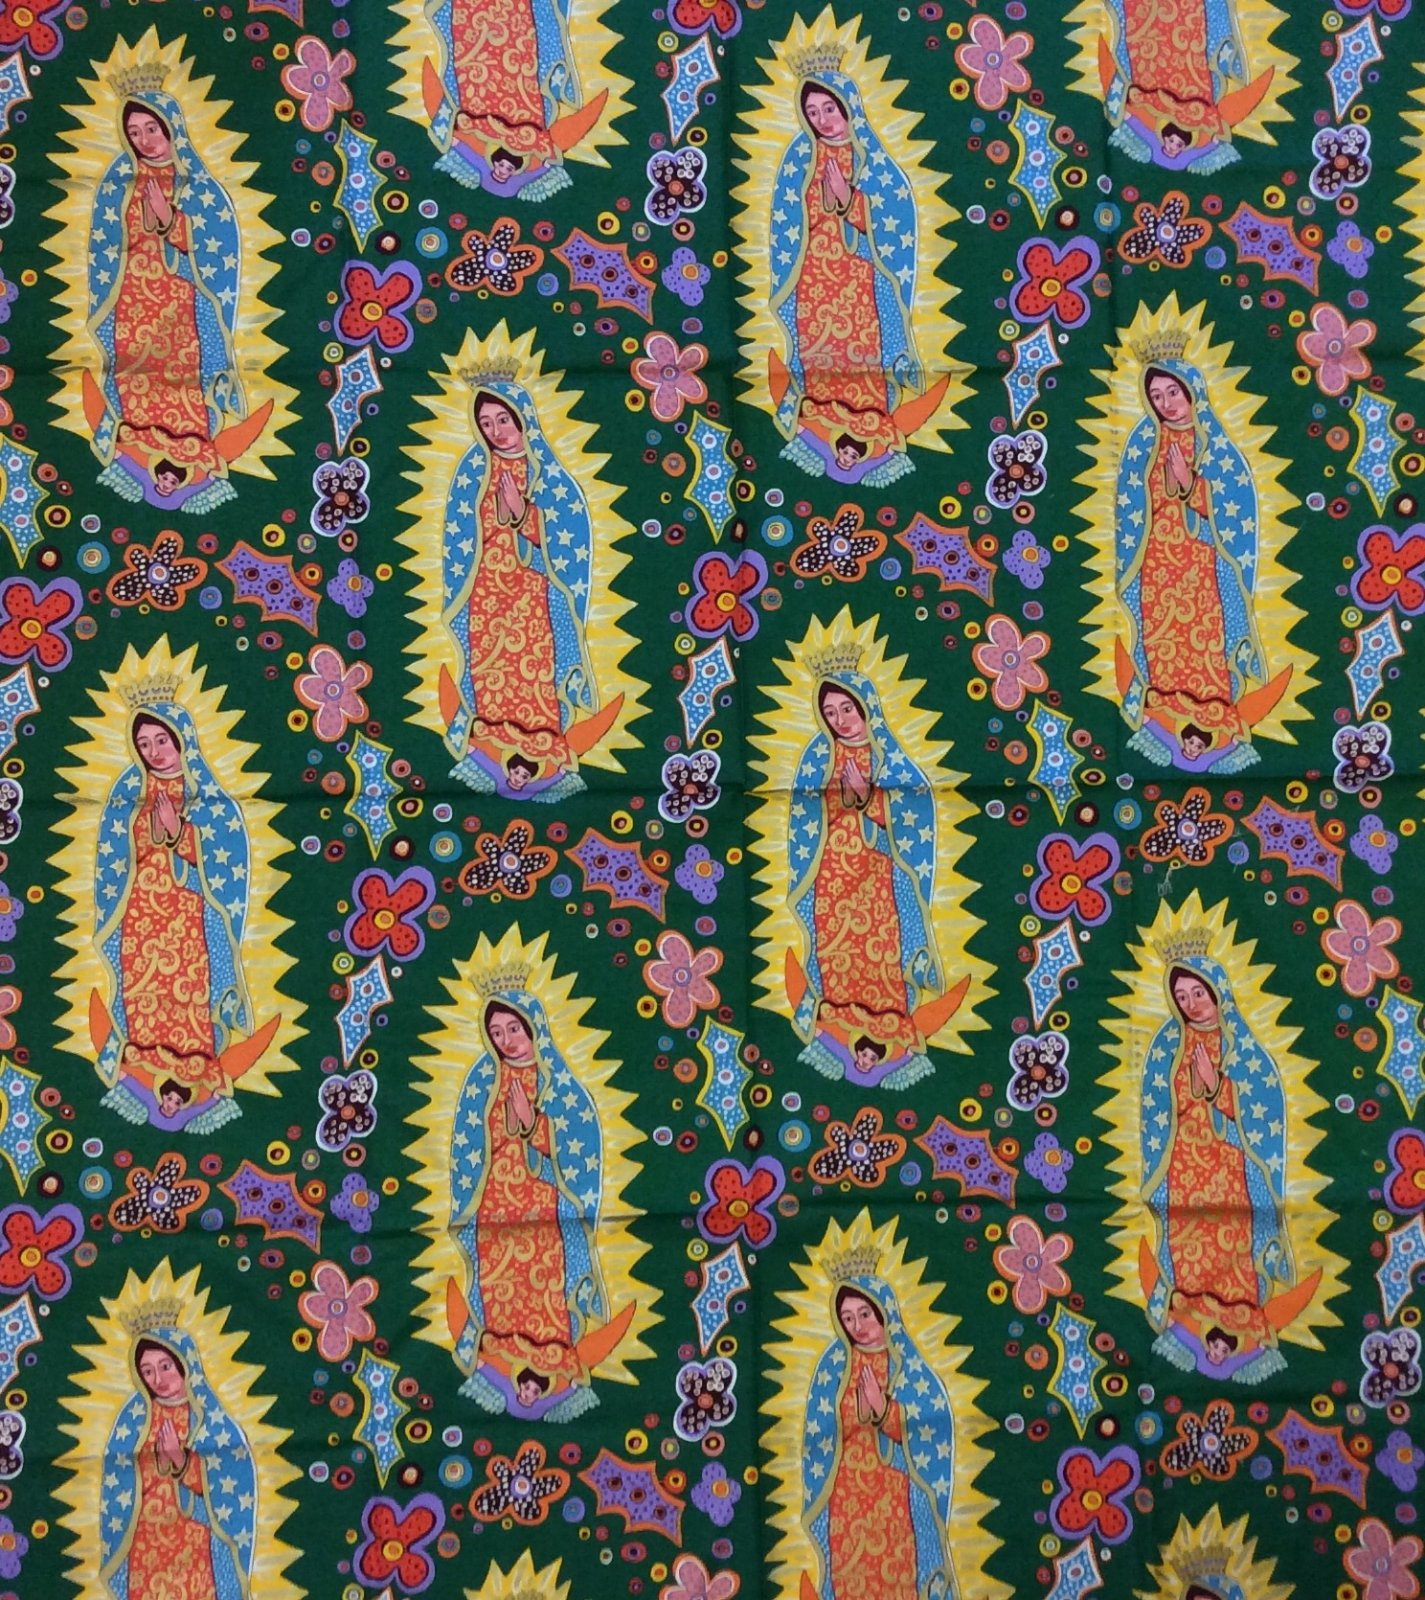 Rare! Out of Print! Dark Green Our Lady of Guadalupe Mexico Terrie Mangat Mexican Religious Flowers Cotton Fabric Quilt Fabric FF70